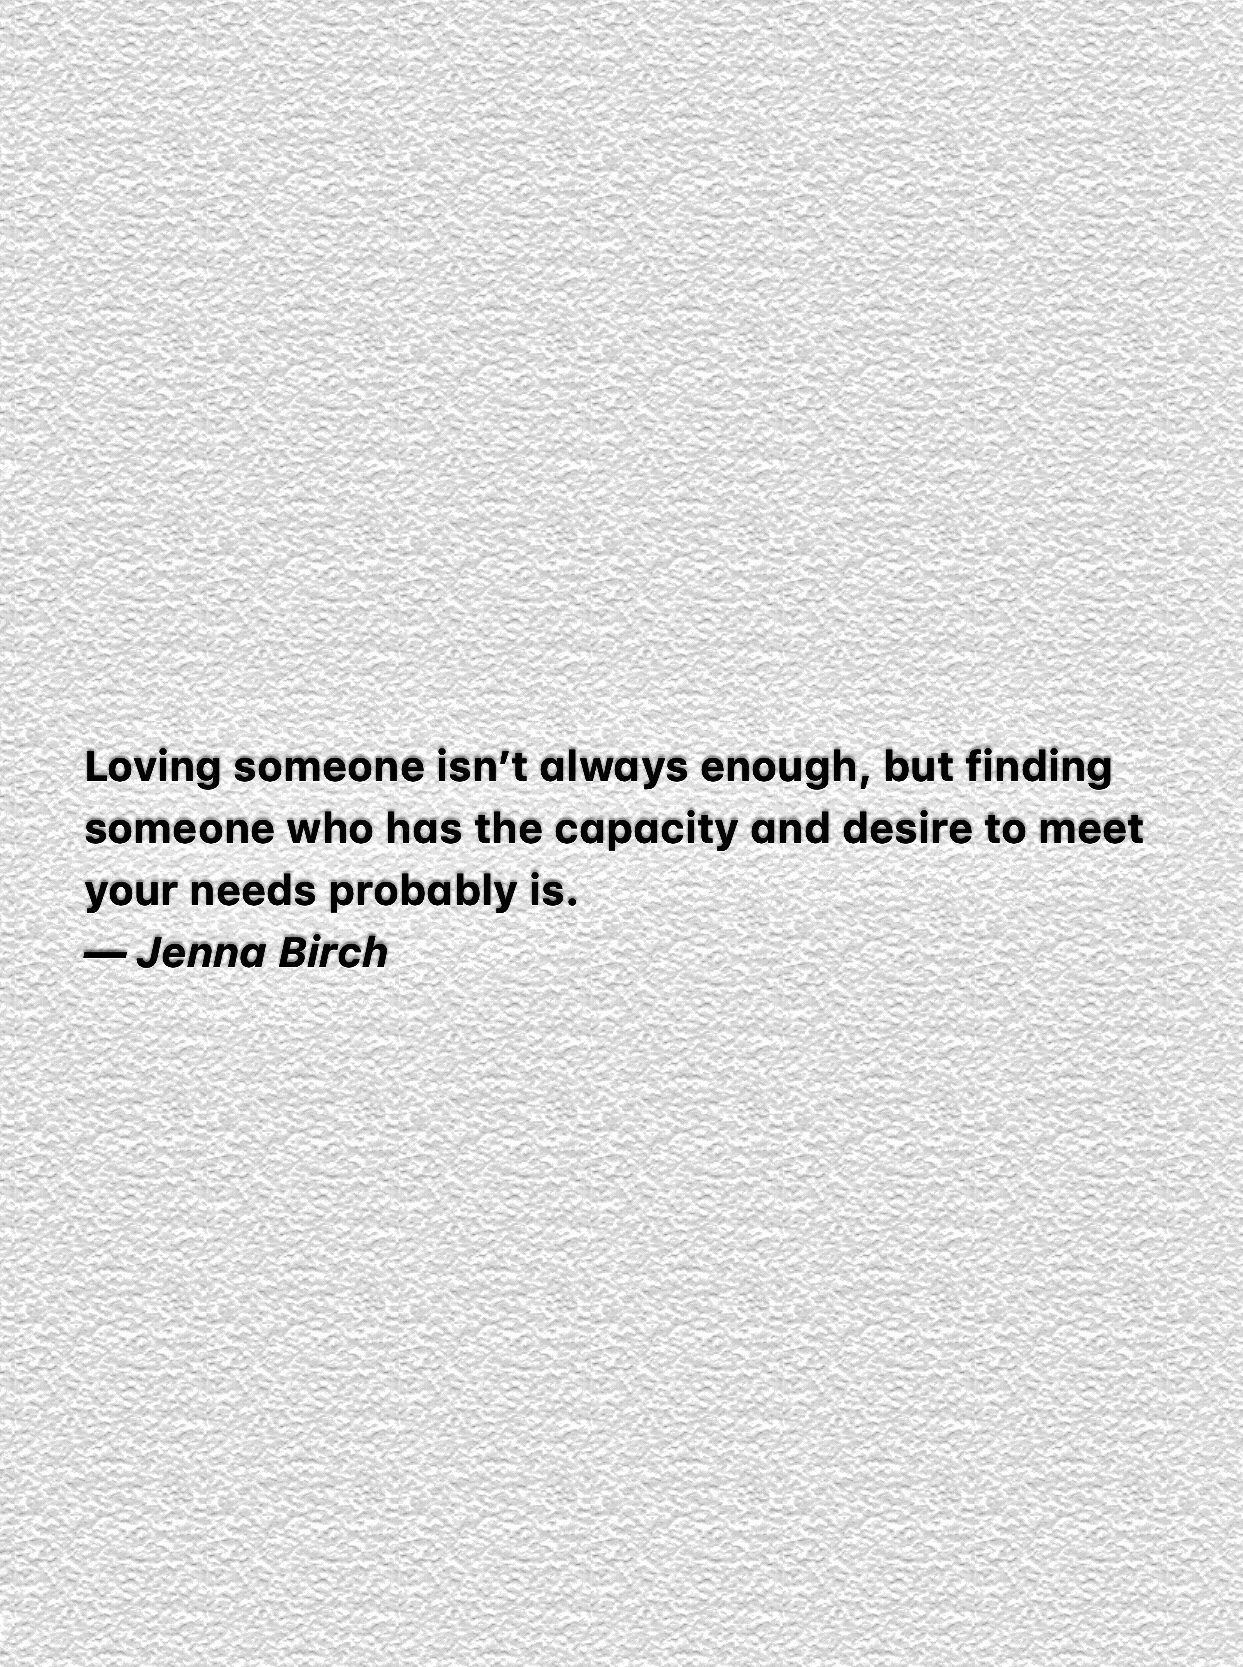 Loving someone isn't always enough, but finding someone who has the capacity and desire to meet your needs probably is. —- https://inspirational.ly